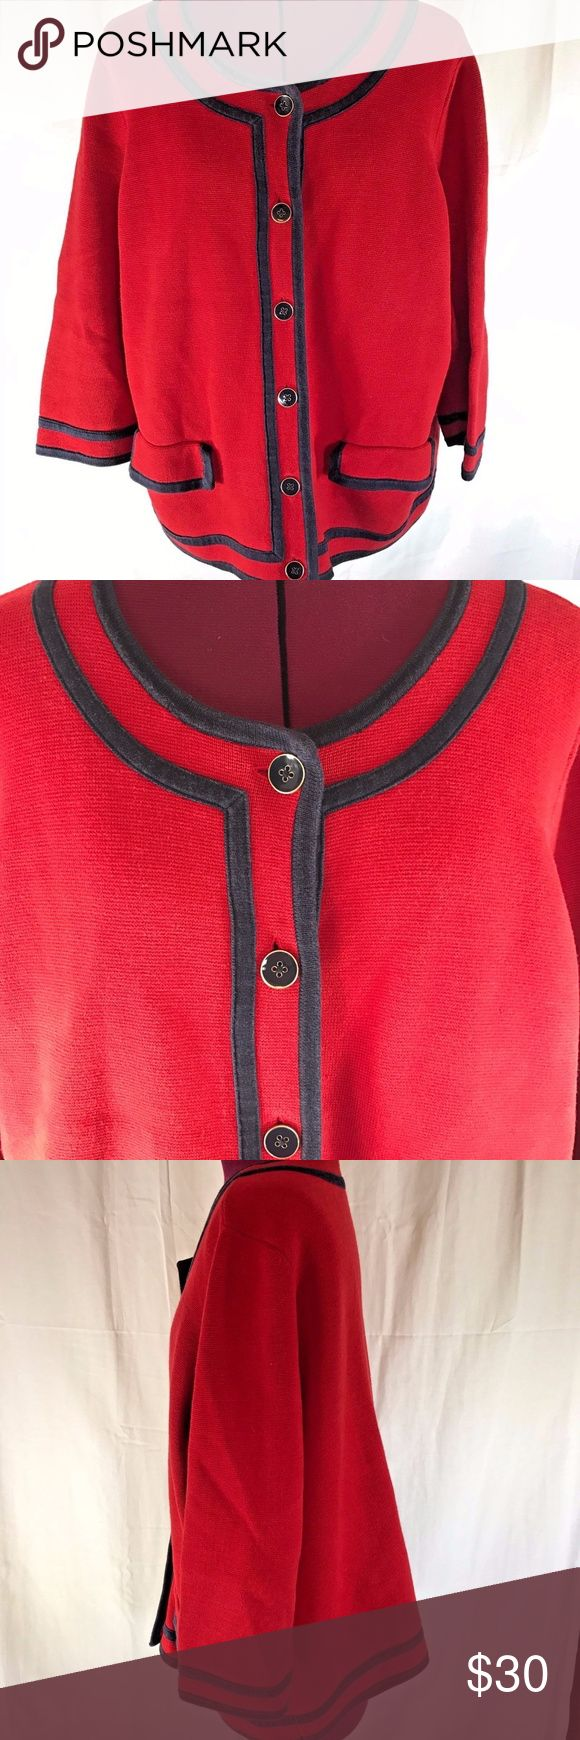 "Talbots 3/4 Sleeve Nautical Cardigan Super cute  cardigan by Talbots Woman  Red with Navy Blue details  Button front  2 single patch pockets with flap closures on front  Ribbed Cuffs  Ribbed Hem  Size 2X   Measures 25"" across bust  Measures 23"" long  Sleeve measure 19"" from shoulder seam to cuff hem  Gently worn, good condition, TAG is unattached on one side, see pic  Super cute with navy blue accents! Talbots Sweaters Cardigans"